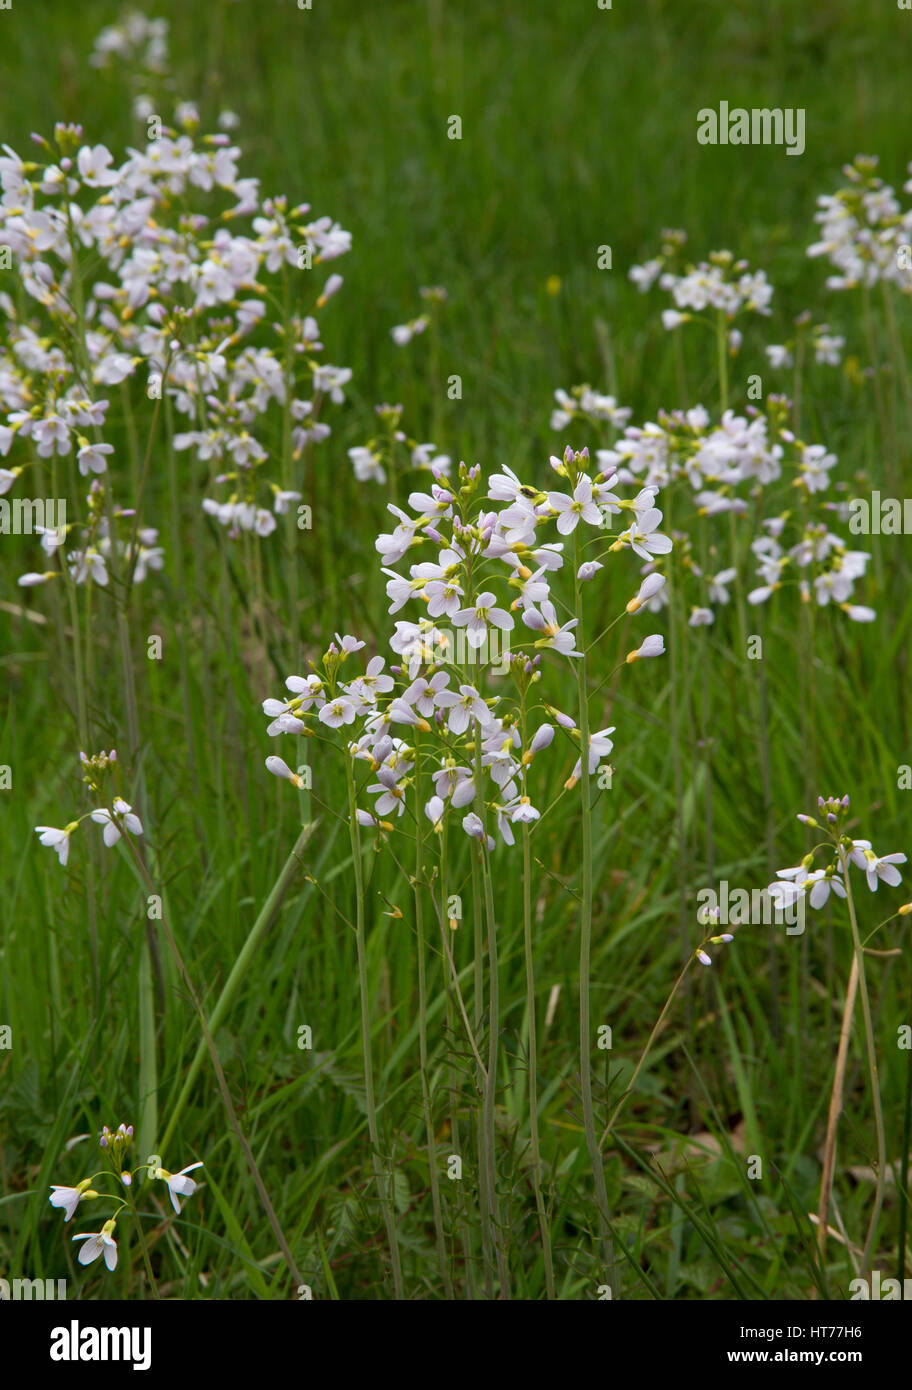 Cuckoo Flower or Lady's Smock, Cardamine pratensis, growing in field. Worcestershire, UK Stock Photo